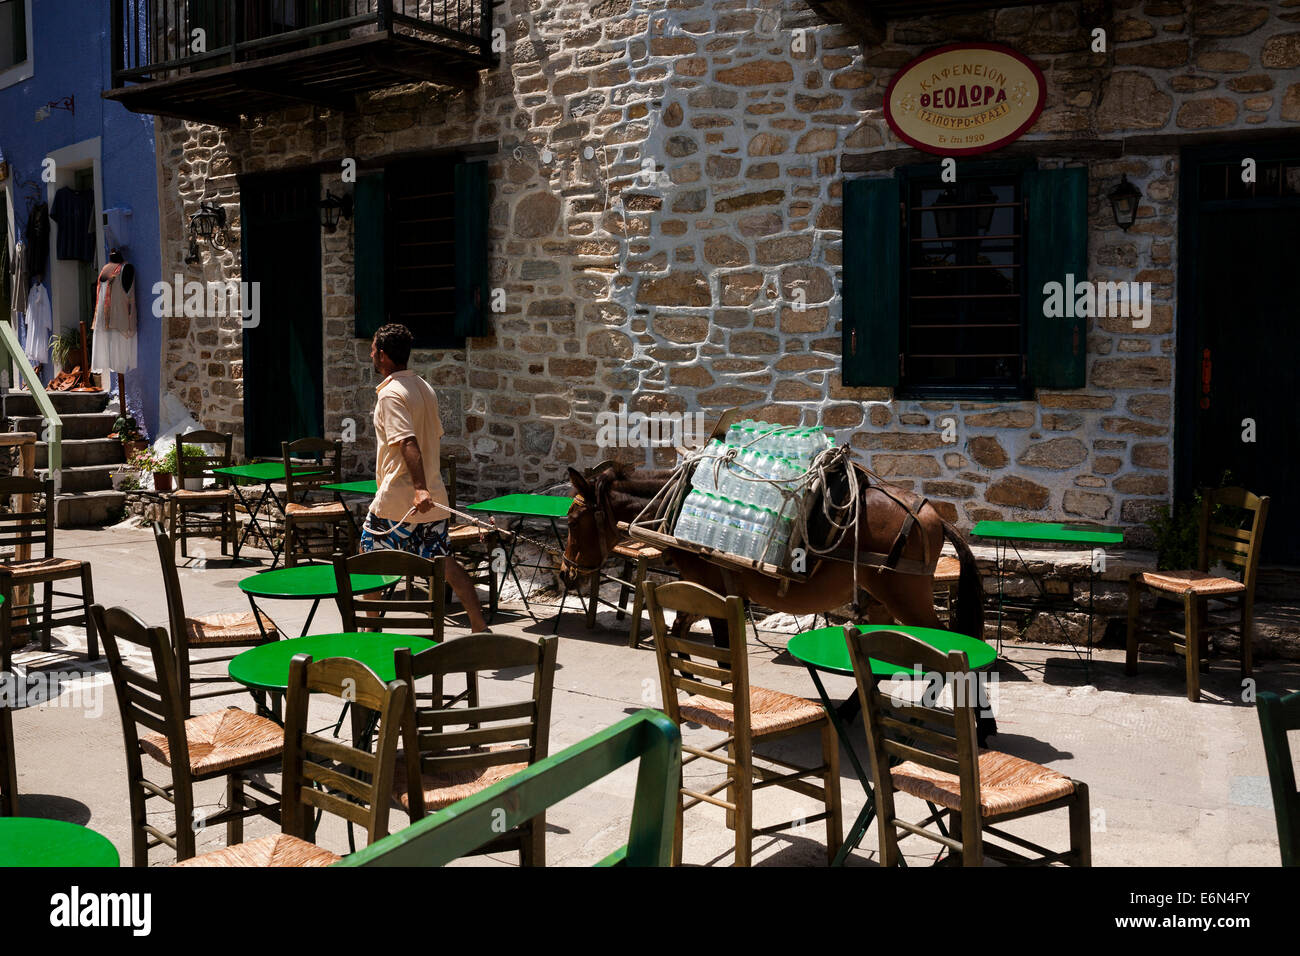 A man uses a mule to carry bottled waters at the Old Village of Alonnisos, Greece on August 2014. - Stock Image